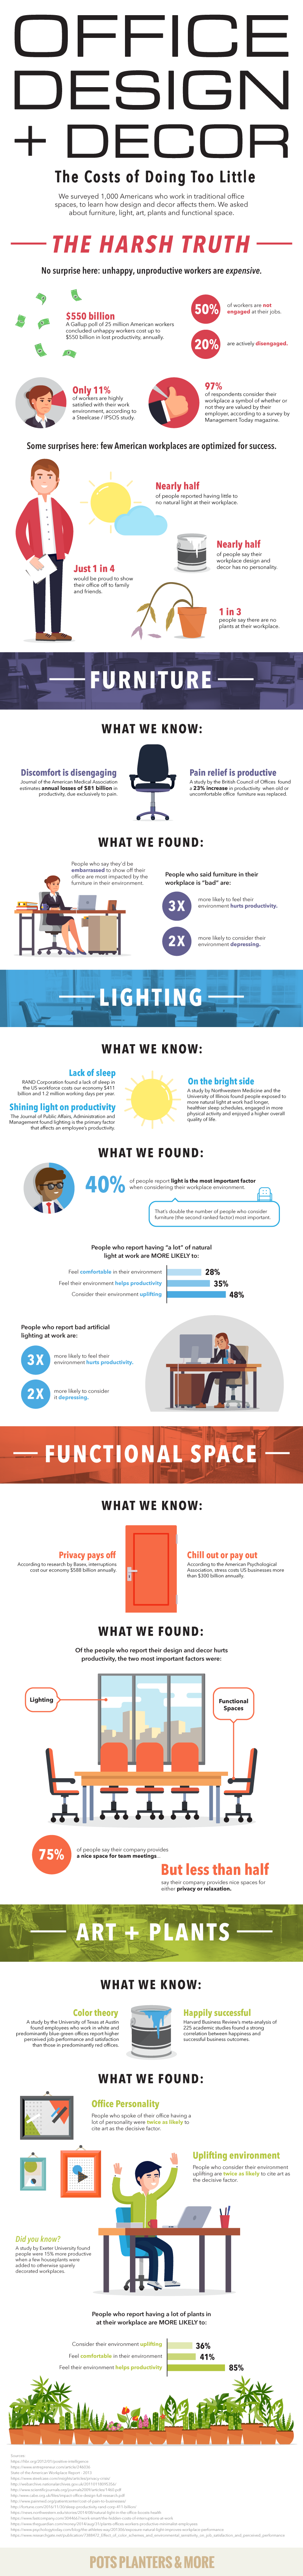 Infographic about office design and décor